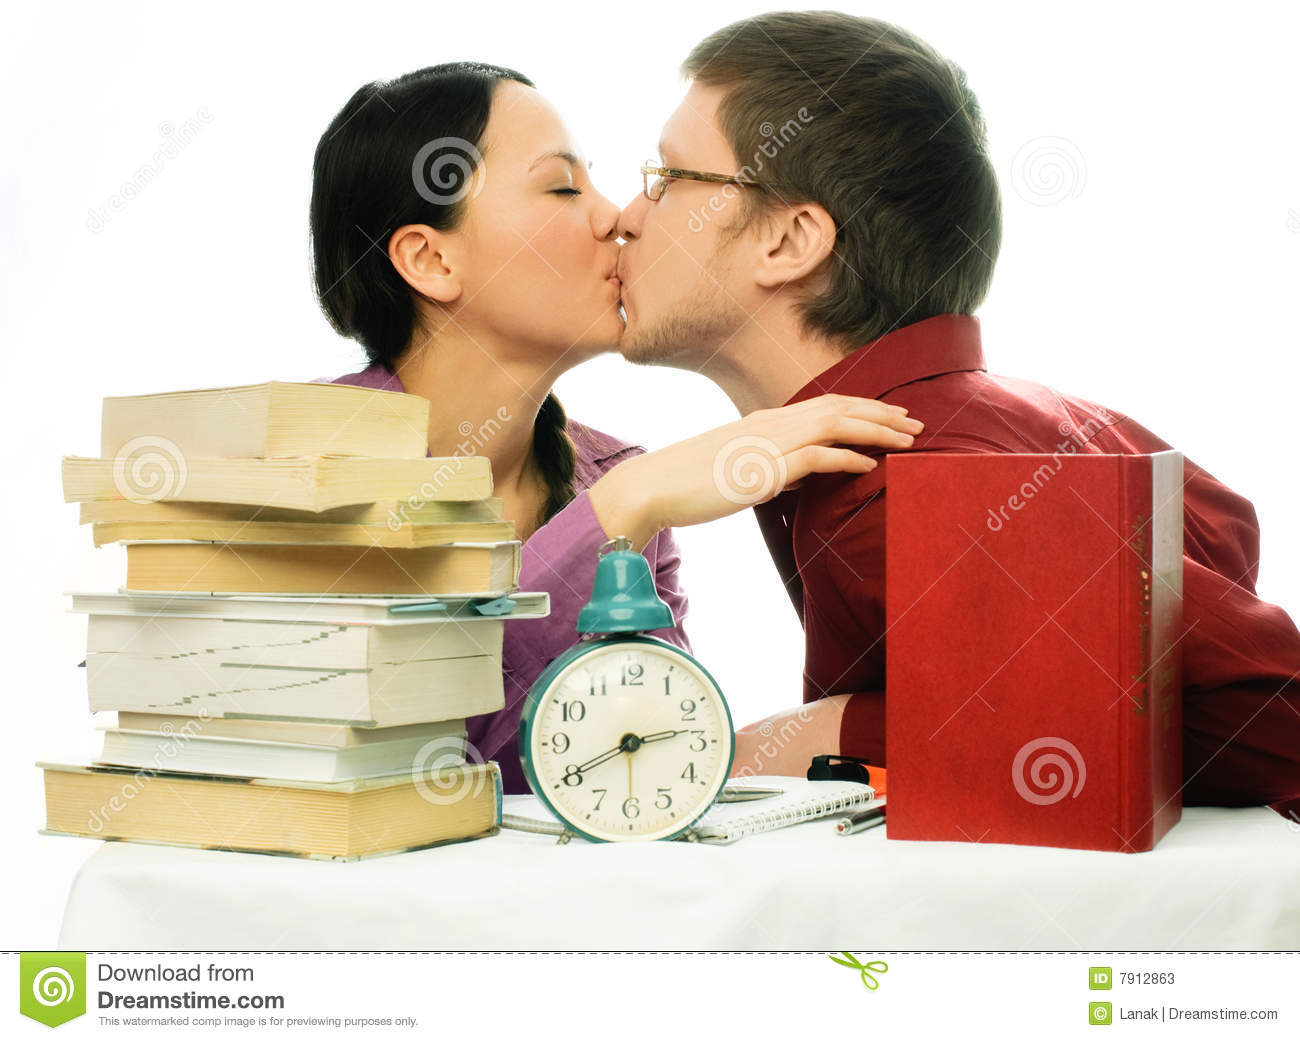 Hugging a man: dream book. Kissing in a dream with a man 81